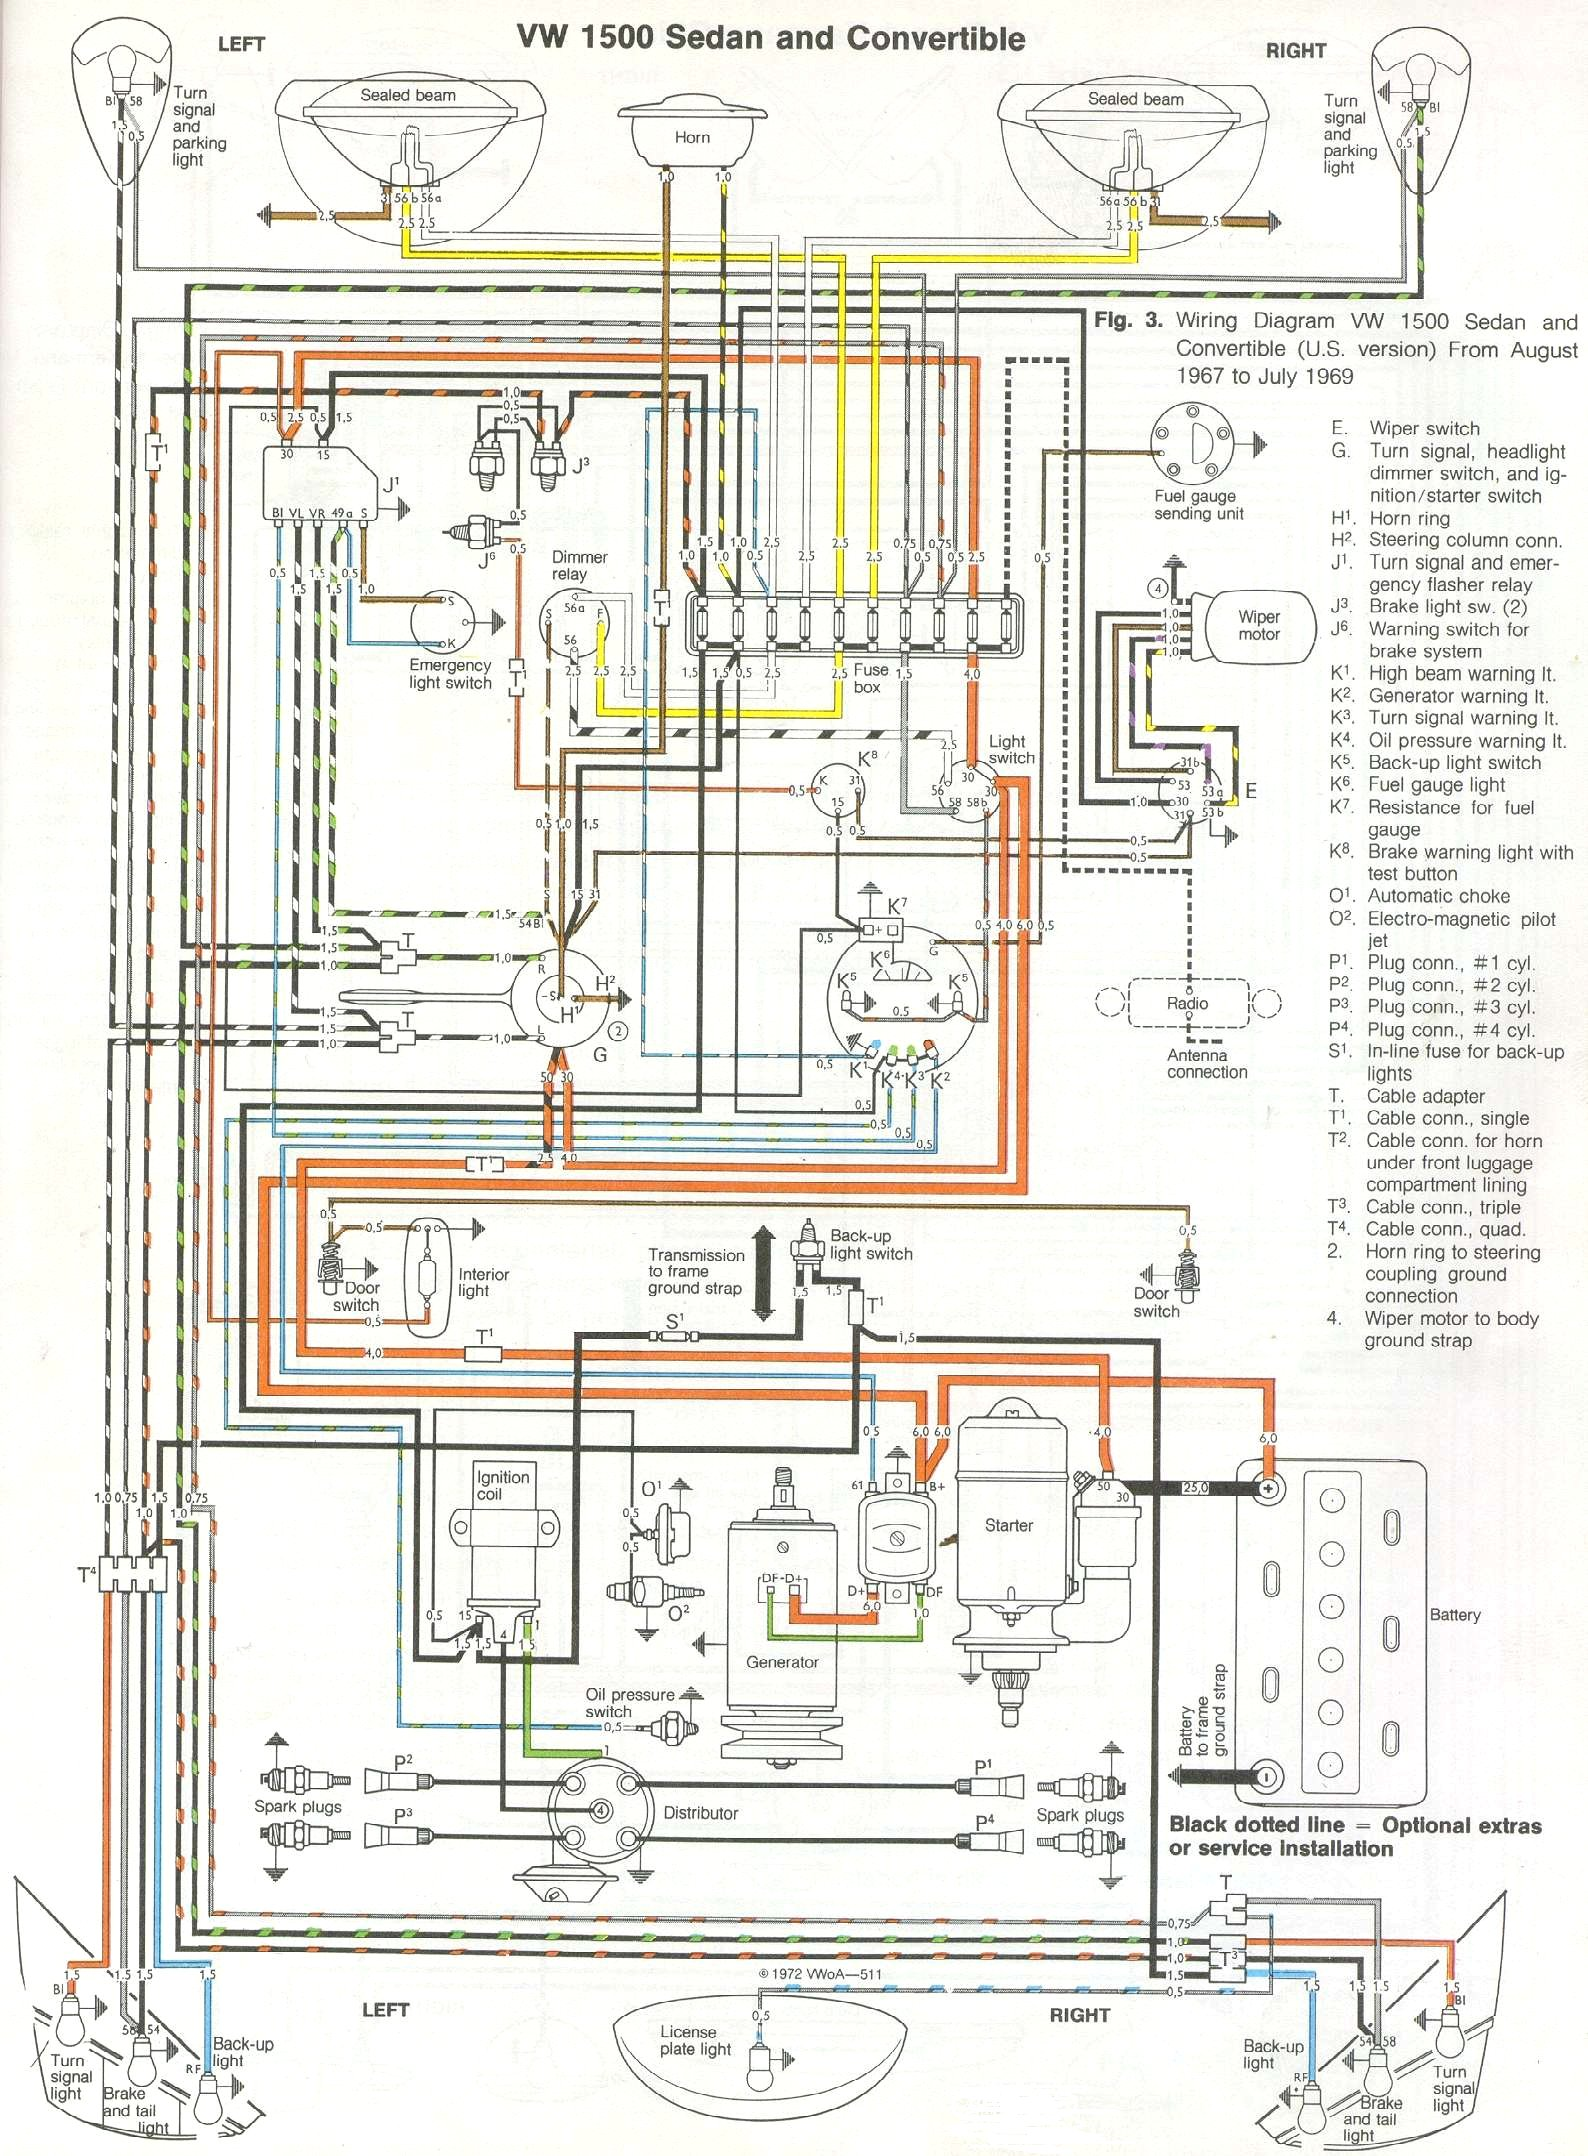 1979 vw super beetle wiring diagram - wiring diagram page few-pool -  few-pool.granballodicomo.it  granballodicomo.it